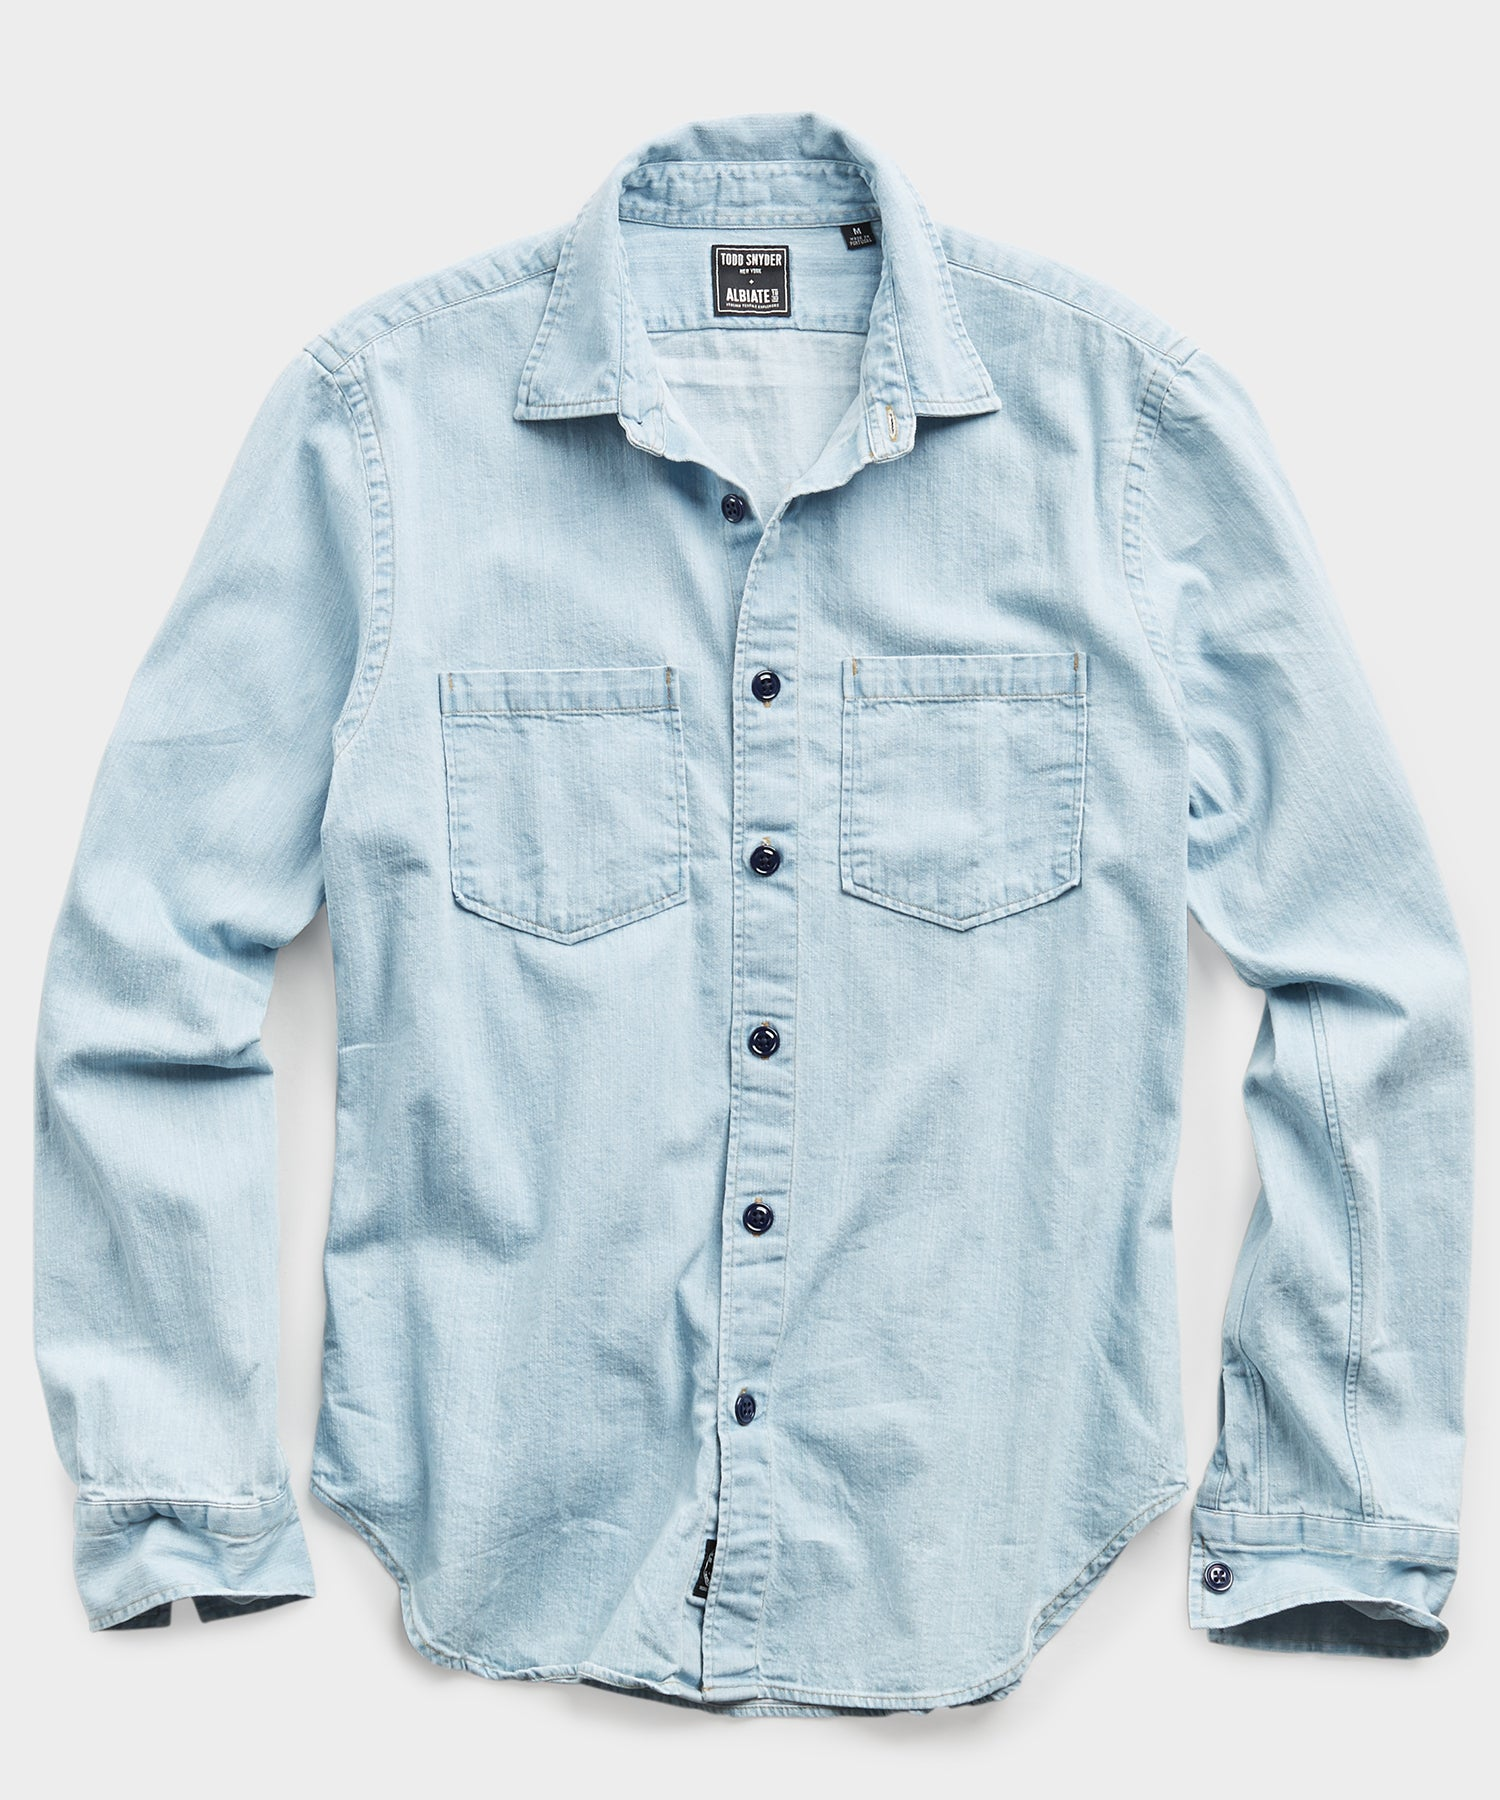 Bleach Denim Overshirt in Light Indigo